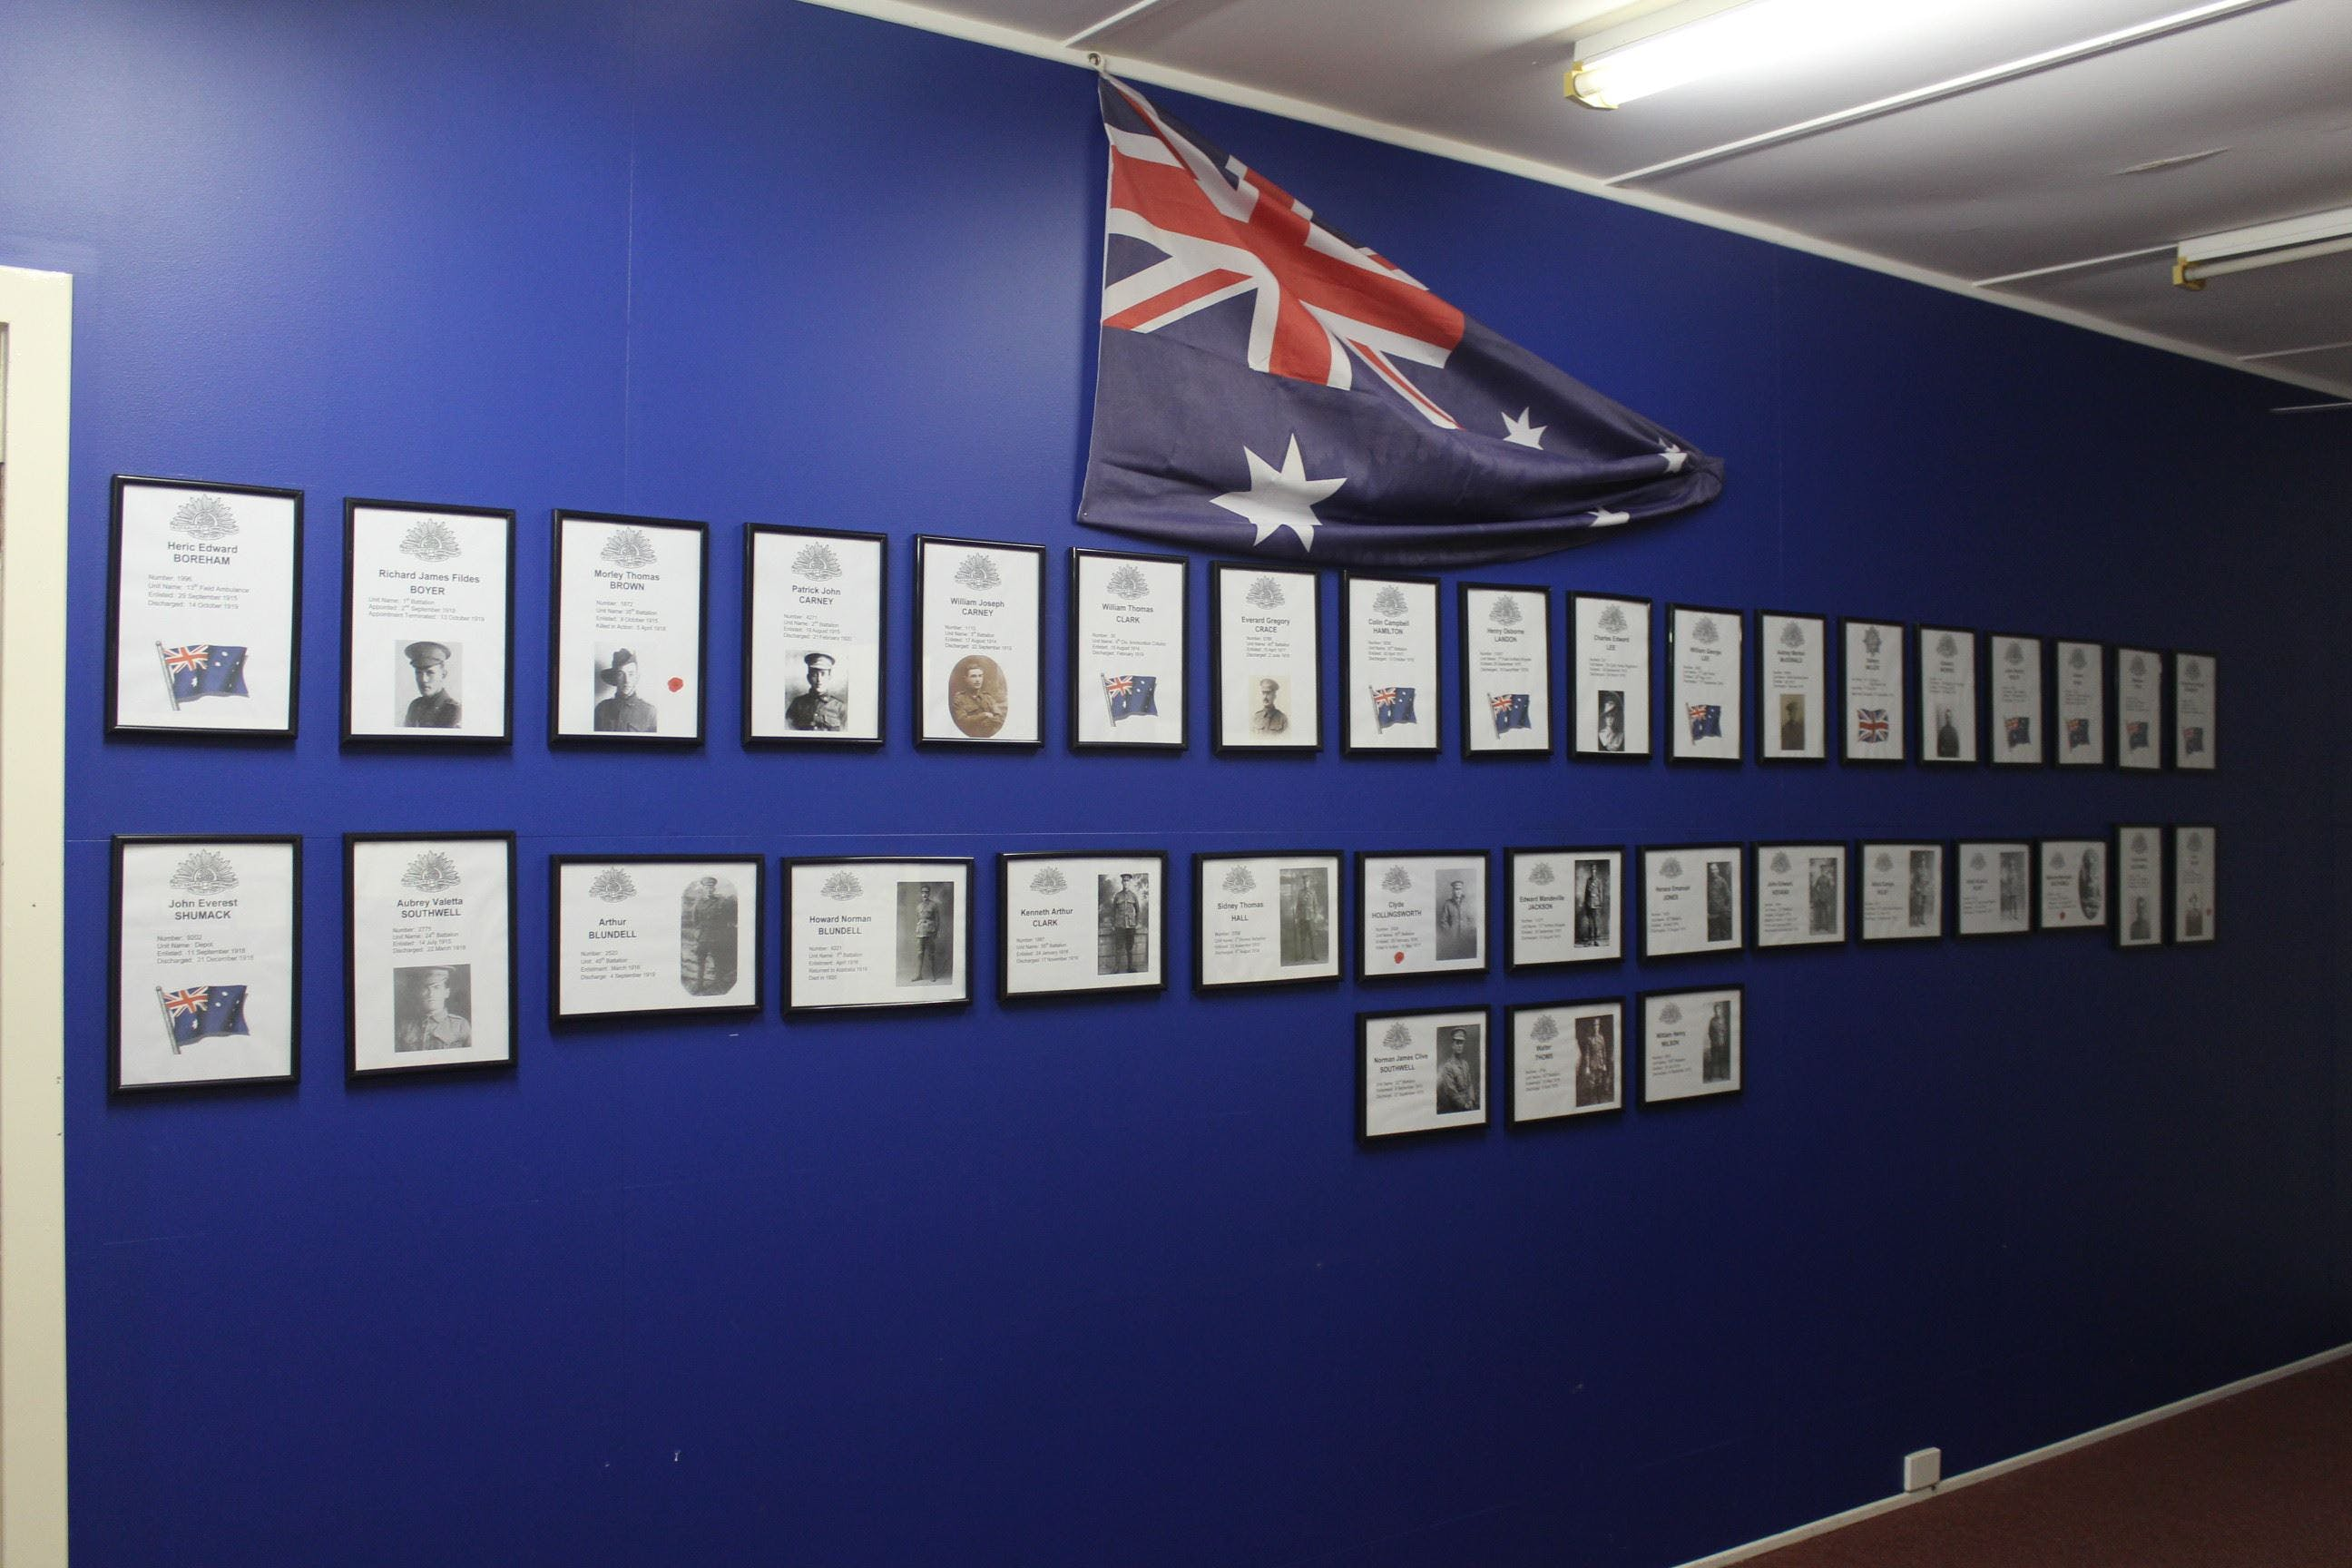 Hall WW1 Commemorative Exhibition - Pubs and Clubs